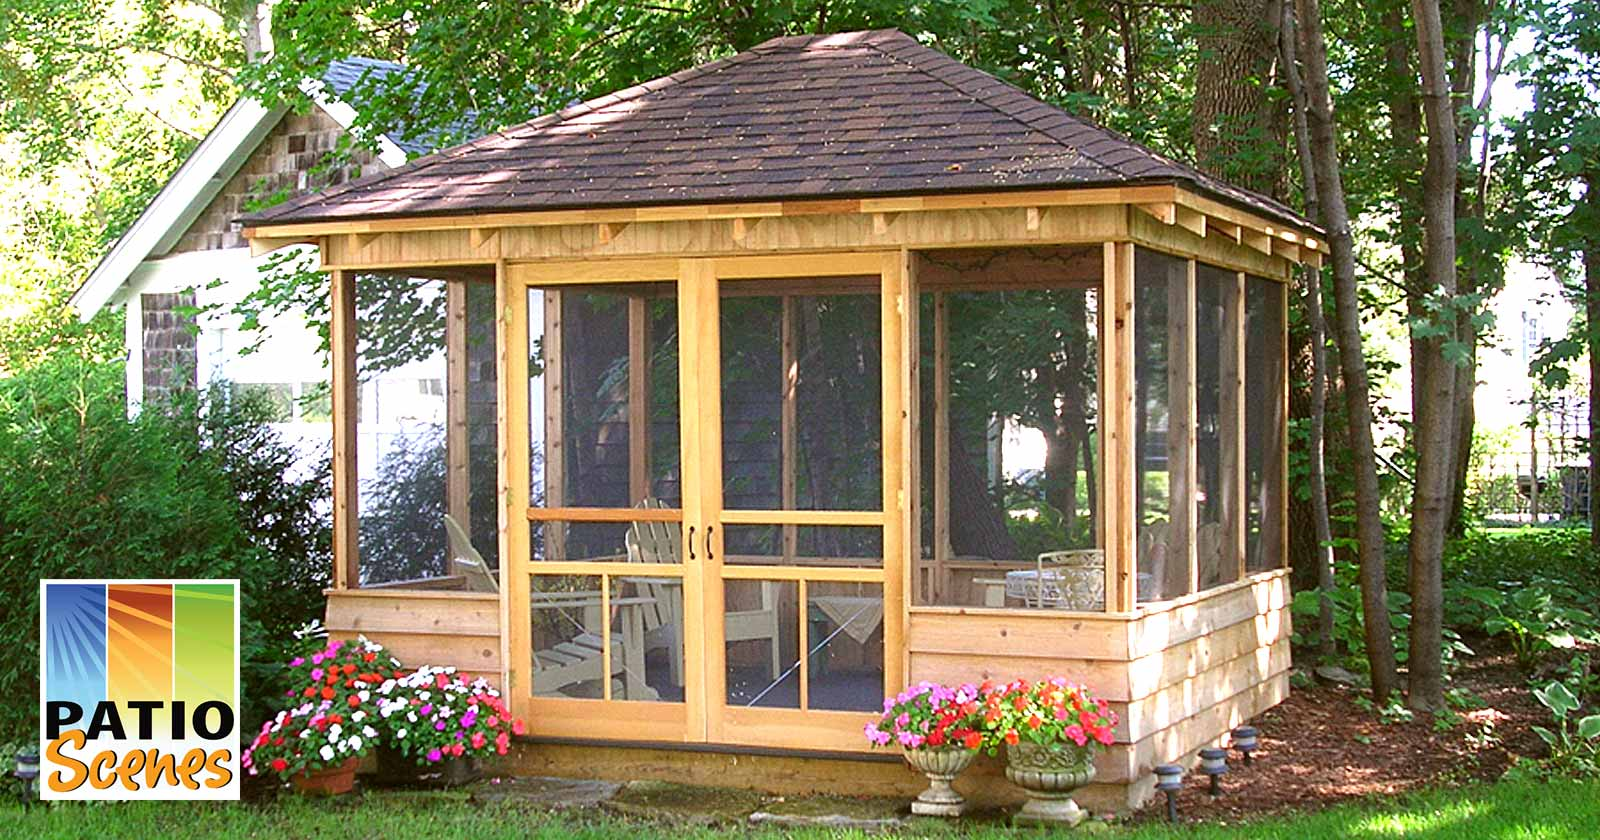 What is gazebo screen patio scenes outdoor privacy screen for What s a privacy screen